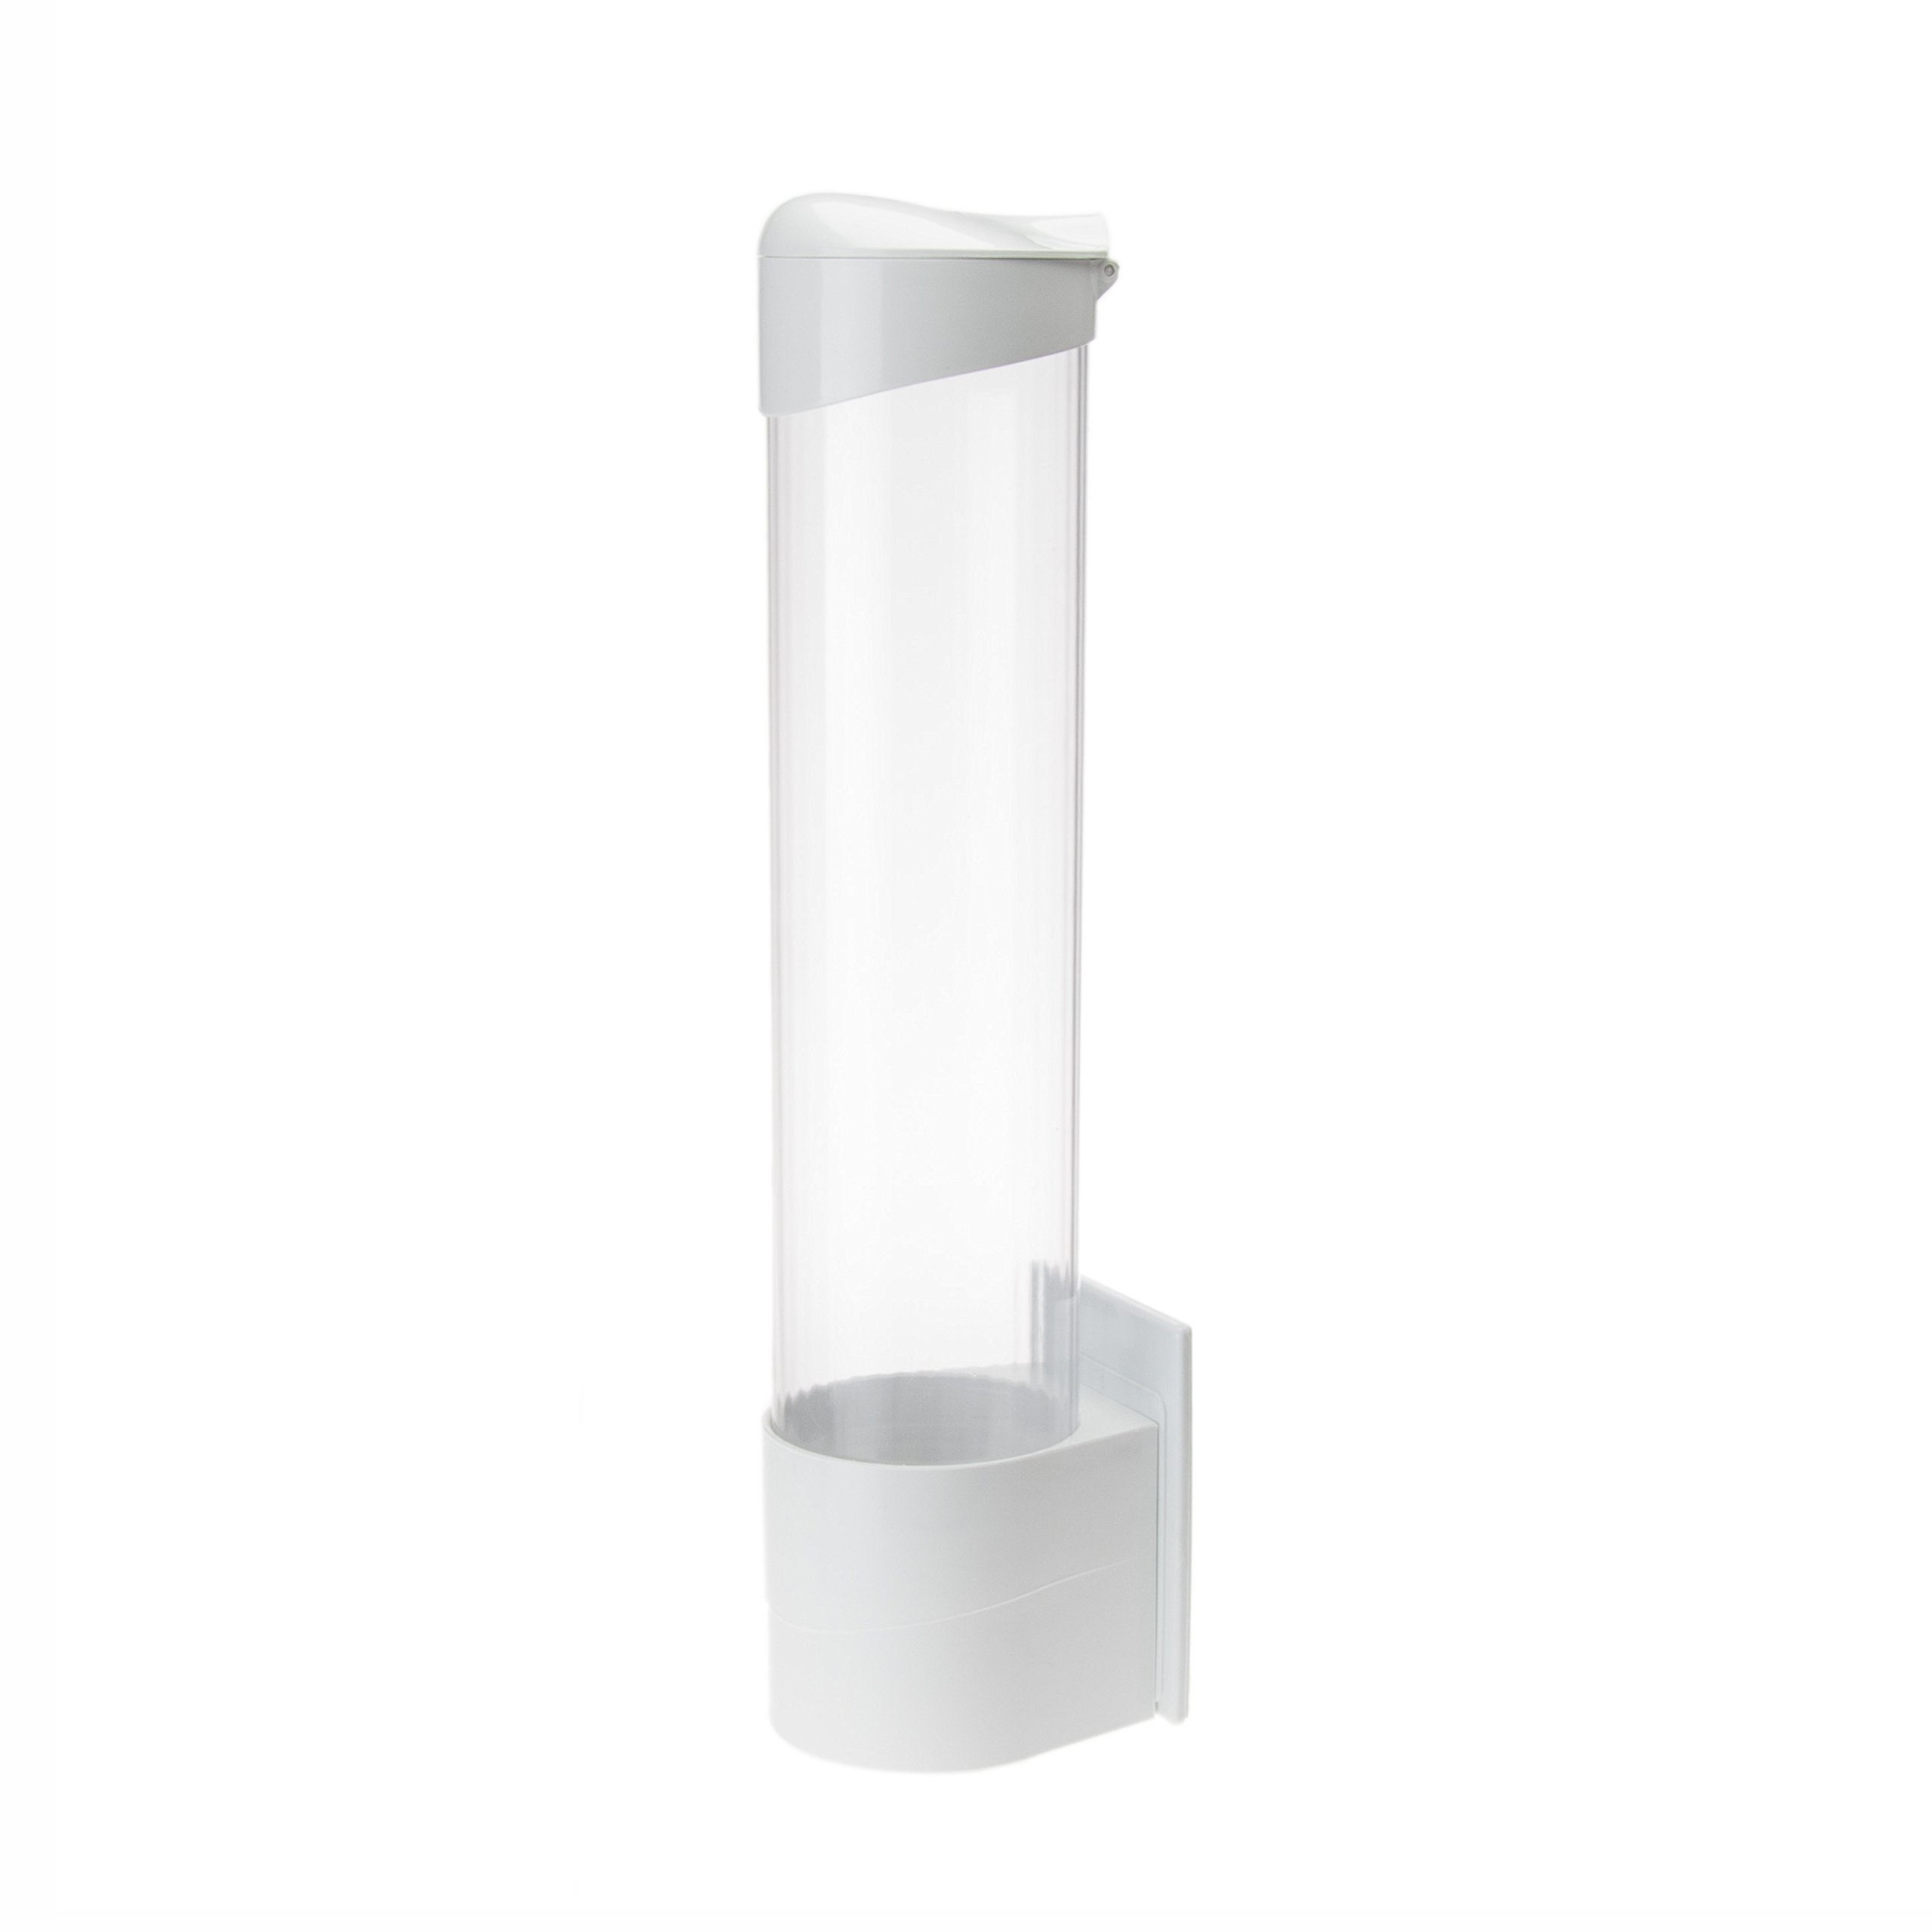 Uviviu Disposable Cup Dispenser,Cups holder Storage Rack for Water Cooler